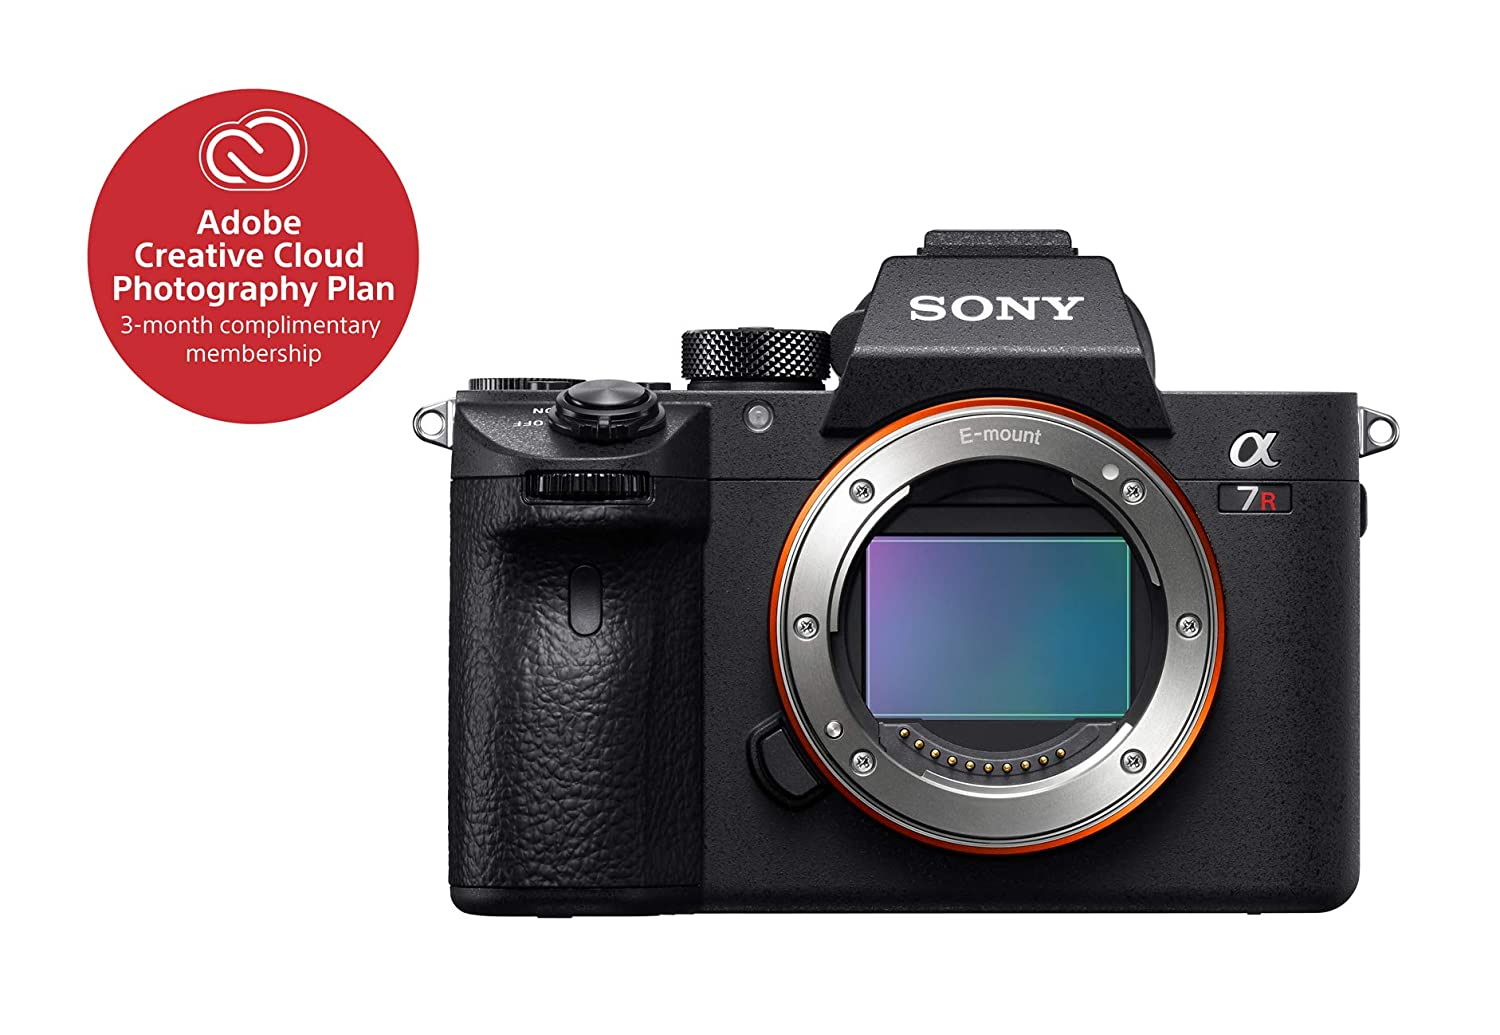 Sony a7R III 42.4MP Full-frame Mirrorless Interchangeable-Lens Camera, Black - A7RM III Sony Electronics Inc ILCE7RM3/B